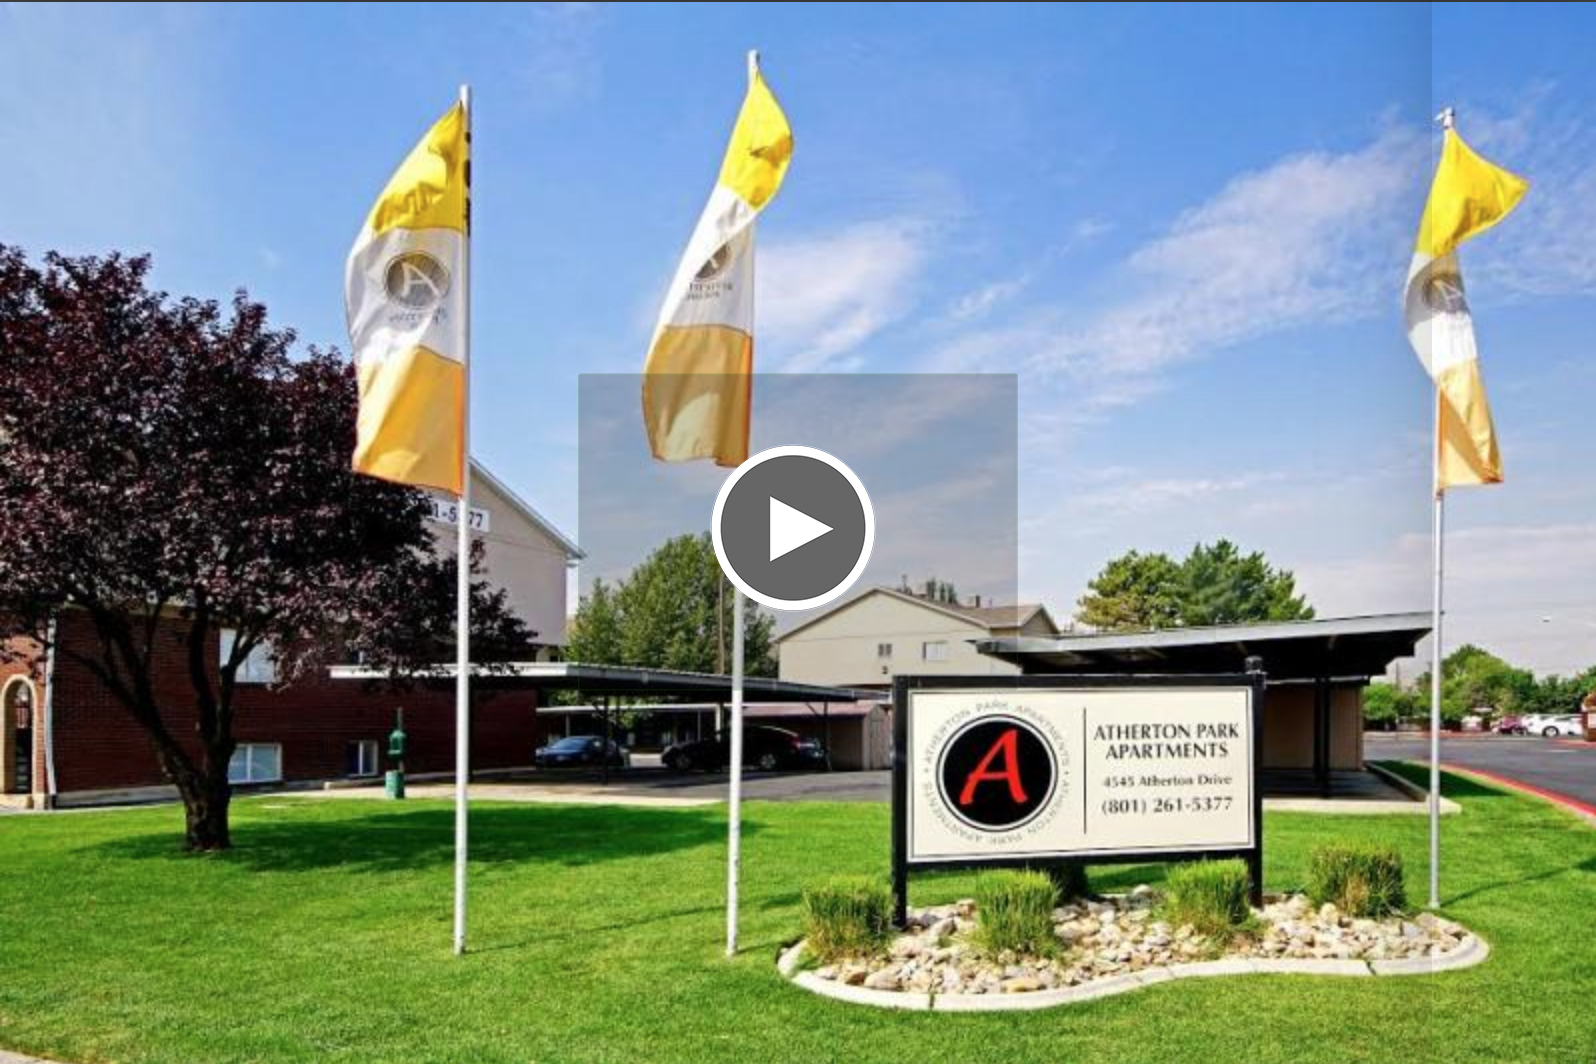 Virtual Tour of Atherton Park Apartments